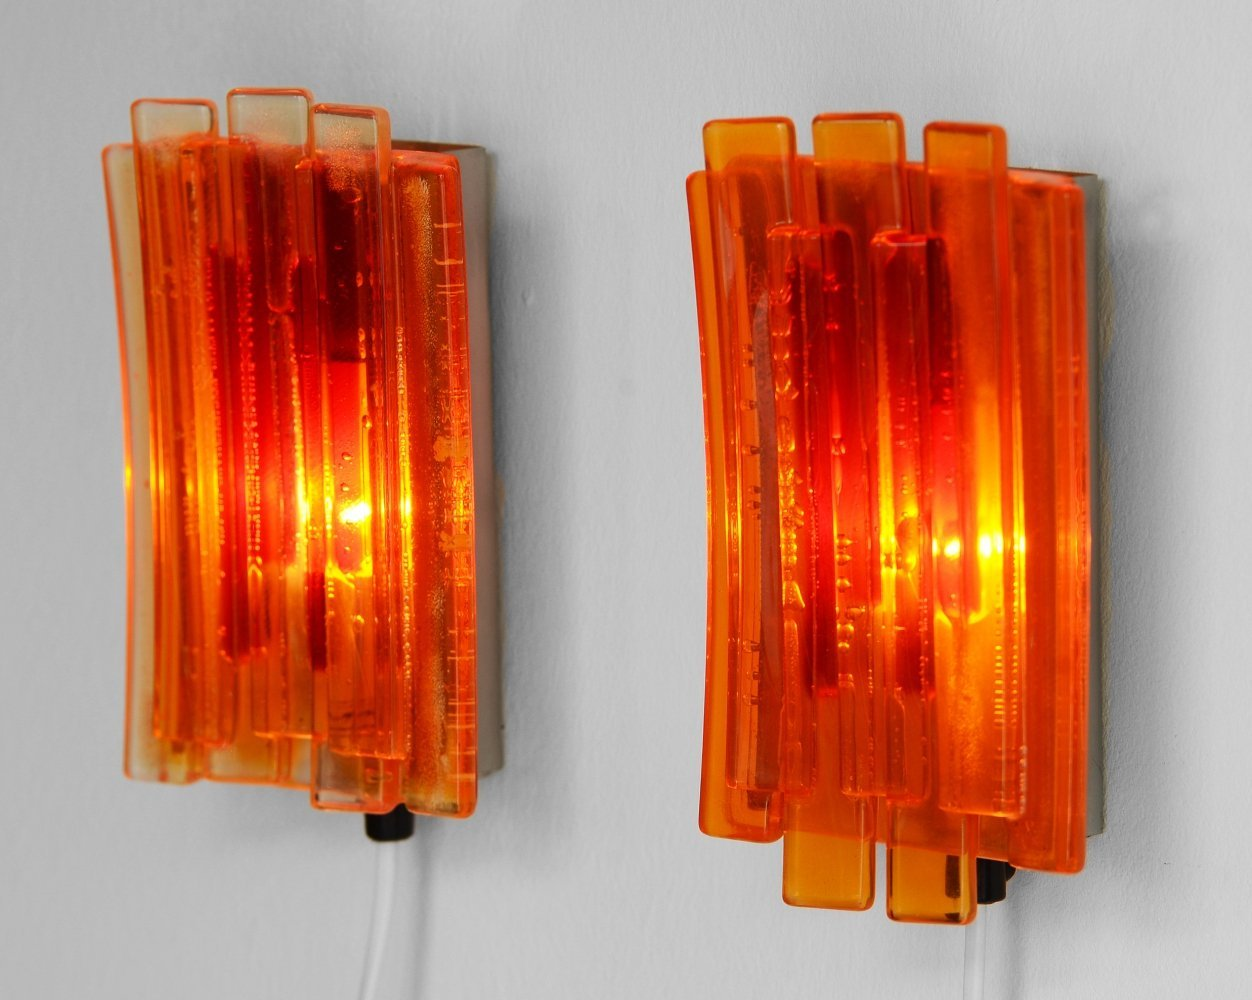 Pair of wall lights/sconces 1001 by Claus Bolby for Lyskaer Belysning